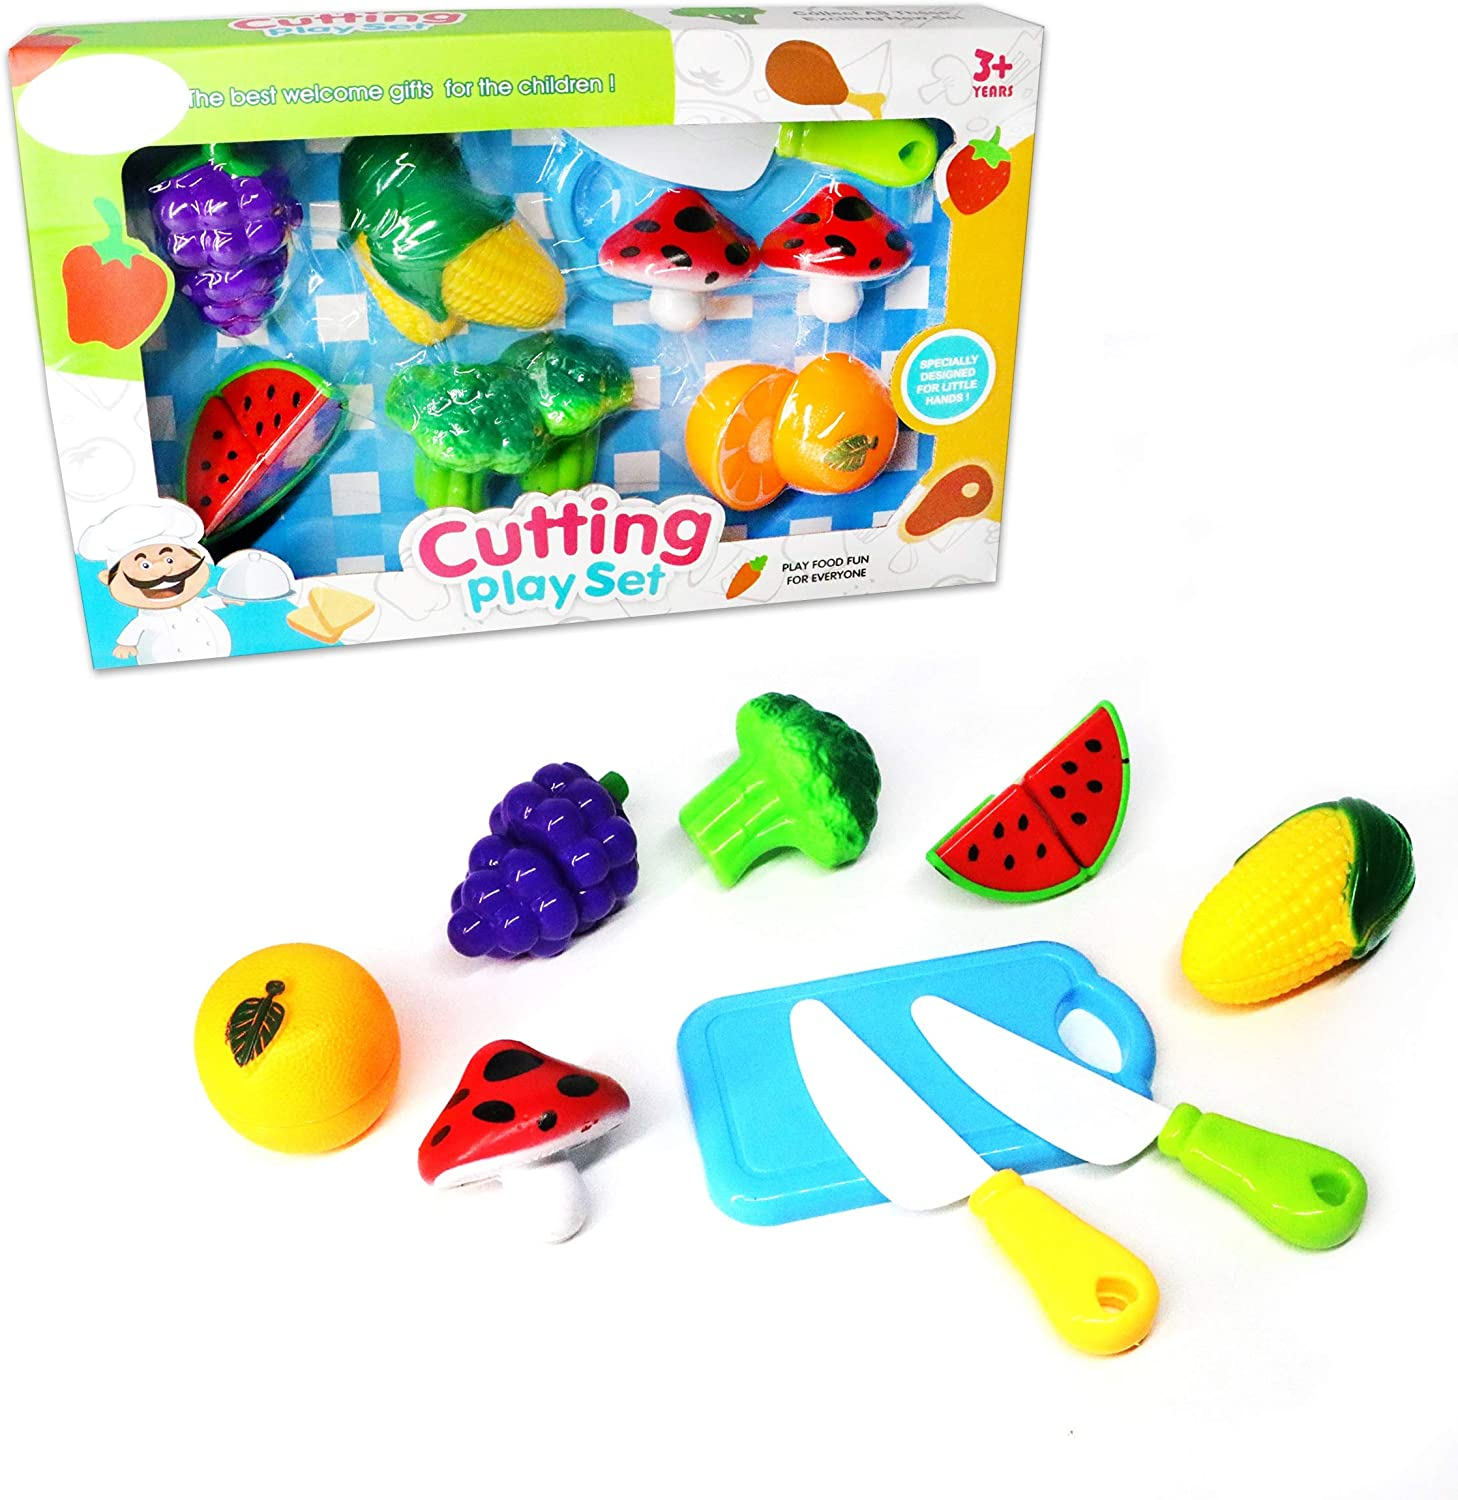 LOZUSA Fruit and Vegetables Play Kitchen Food for Pretend Cutting Food Toys - Plastic Food Toys Educational Playset with Toy Knife, Cutting Board, Mushrooms, Broccoli, Corn, Orange, Grapes, Watermelon